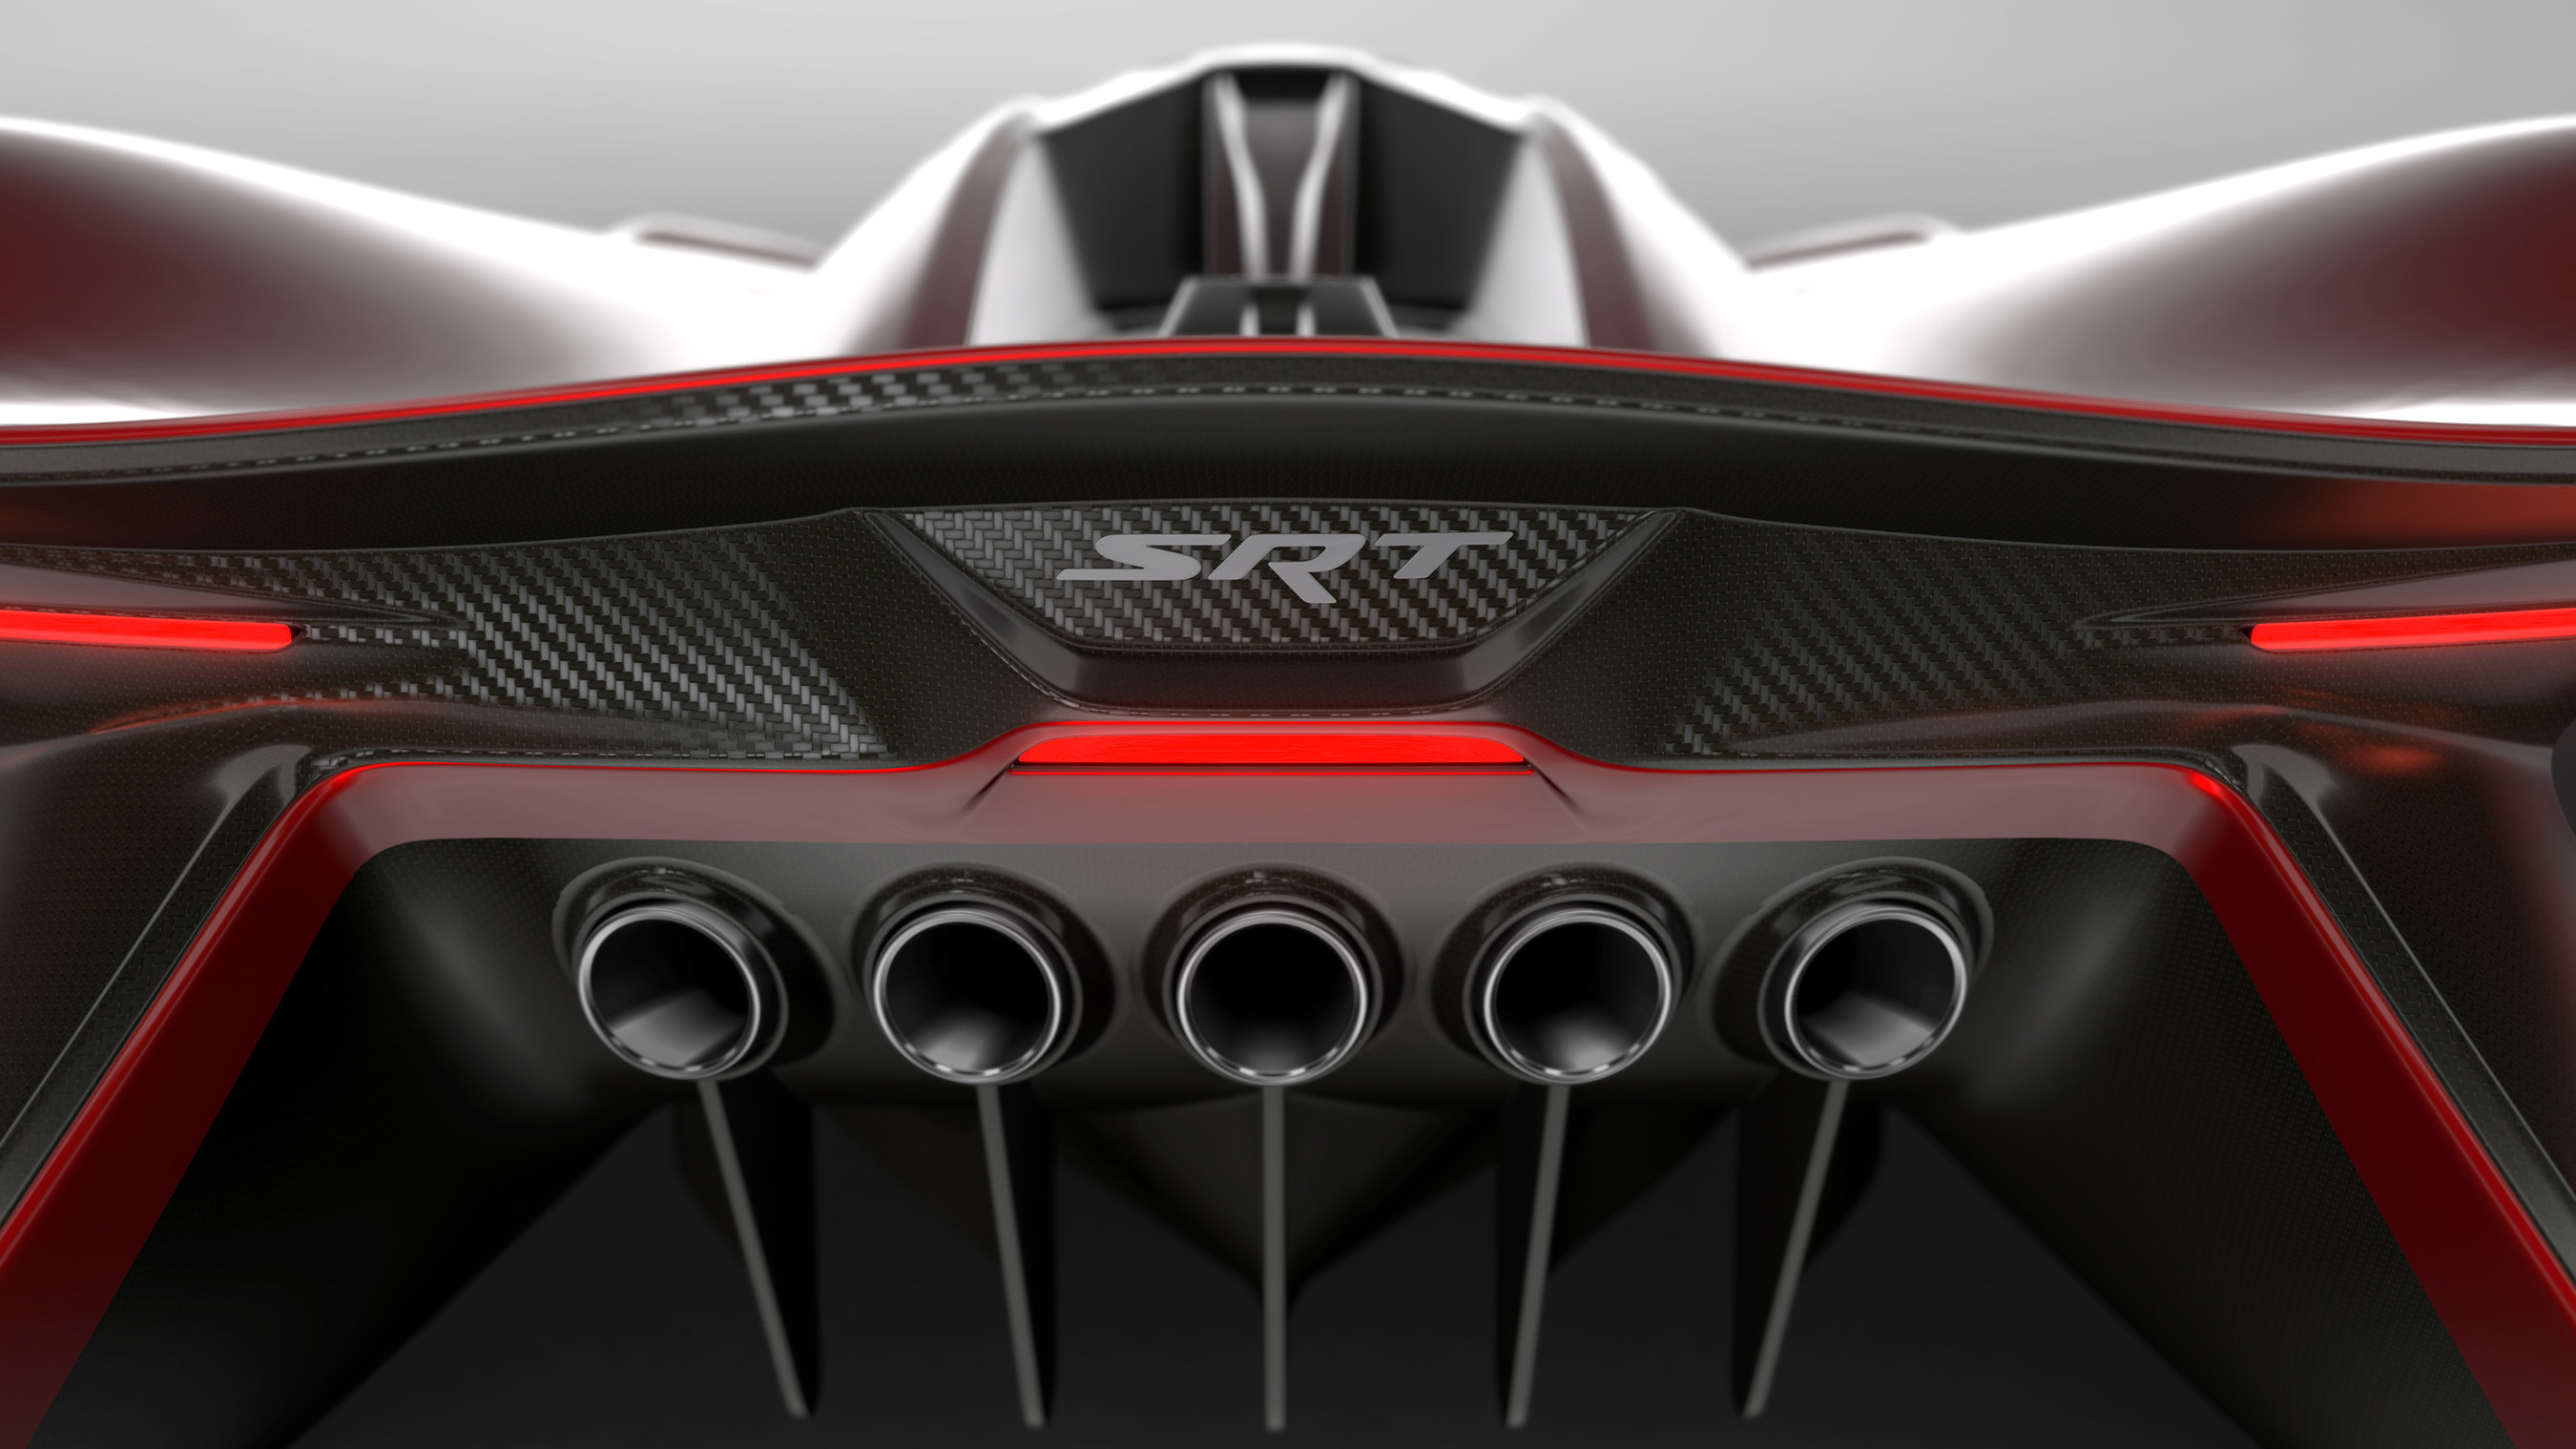 FCA US LLC has revealed new images of the SRT Tomahawk Vision Gran Turismo, a single-seat hybrid powertrain concept vehicle, to be released exclusively in Gran Turismo(R)6. Stay tuned for more updates including the official unveiling coming soon!